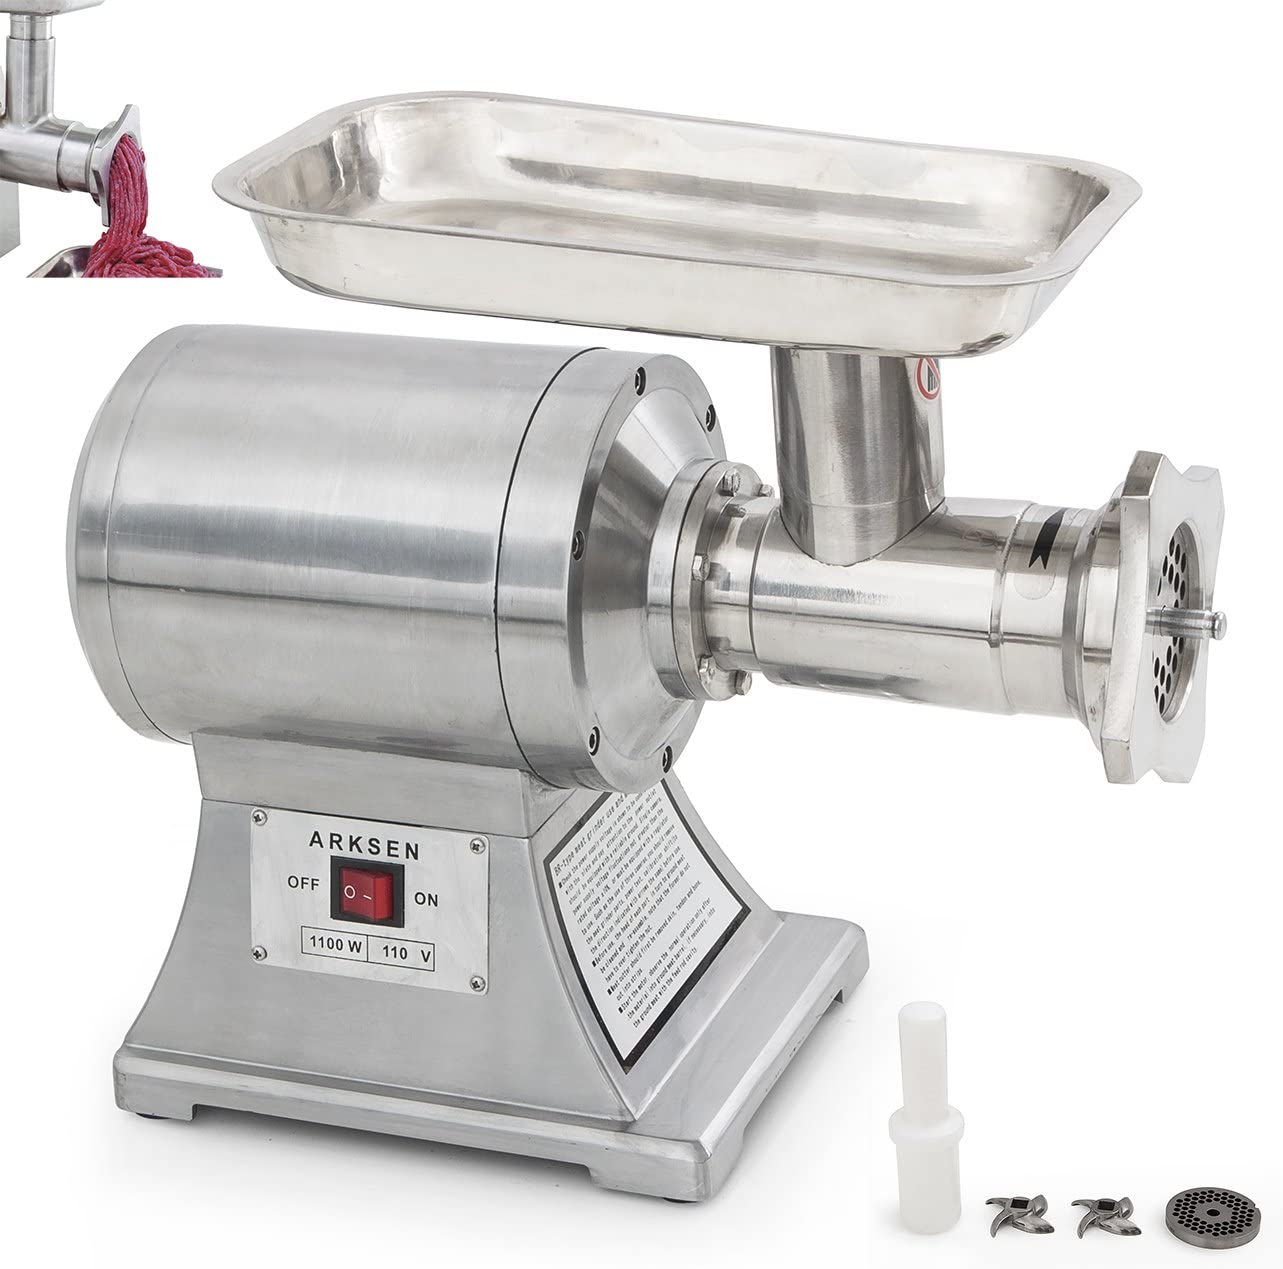 Best Commercial Meat Grinder ARKSEN 1100W Commercial Style #22 Industrial Electric Meat Grinder